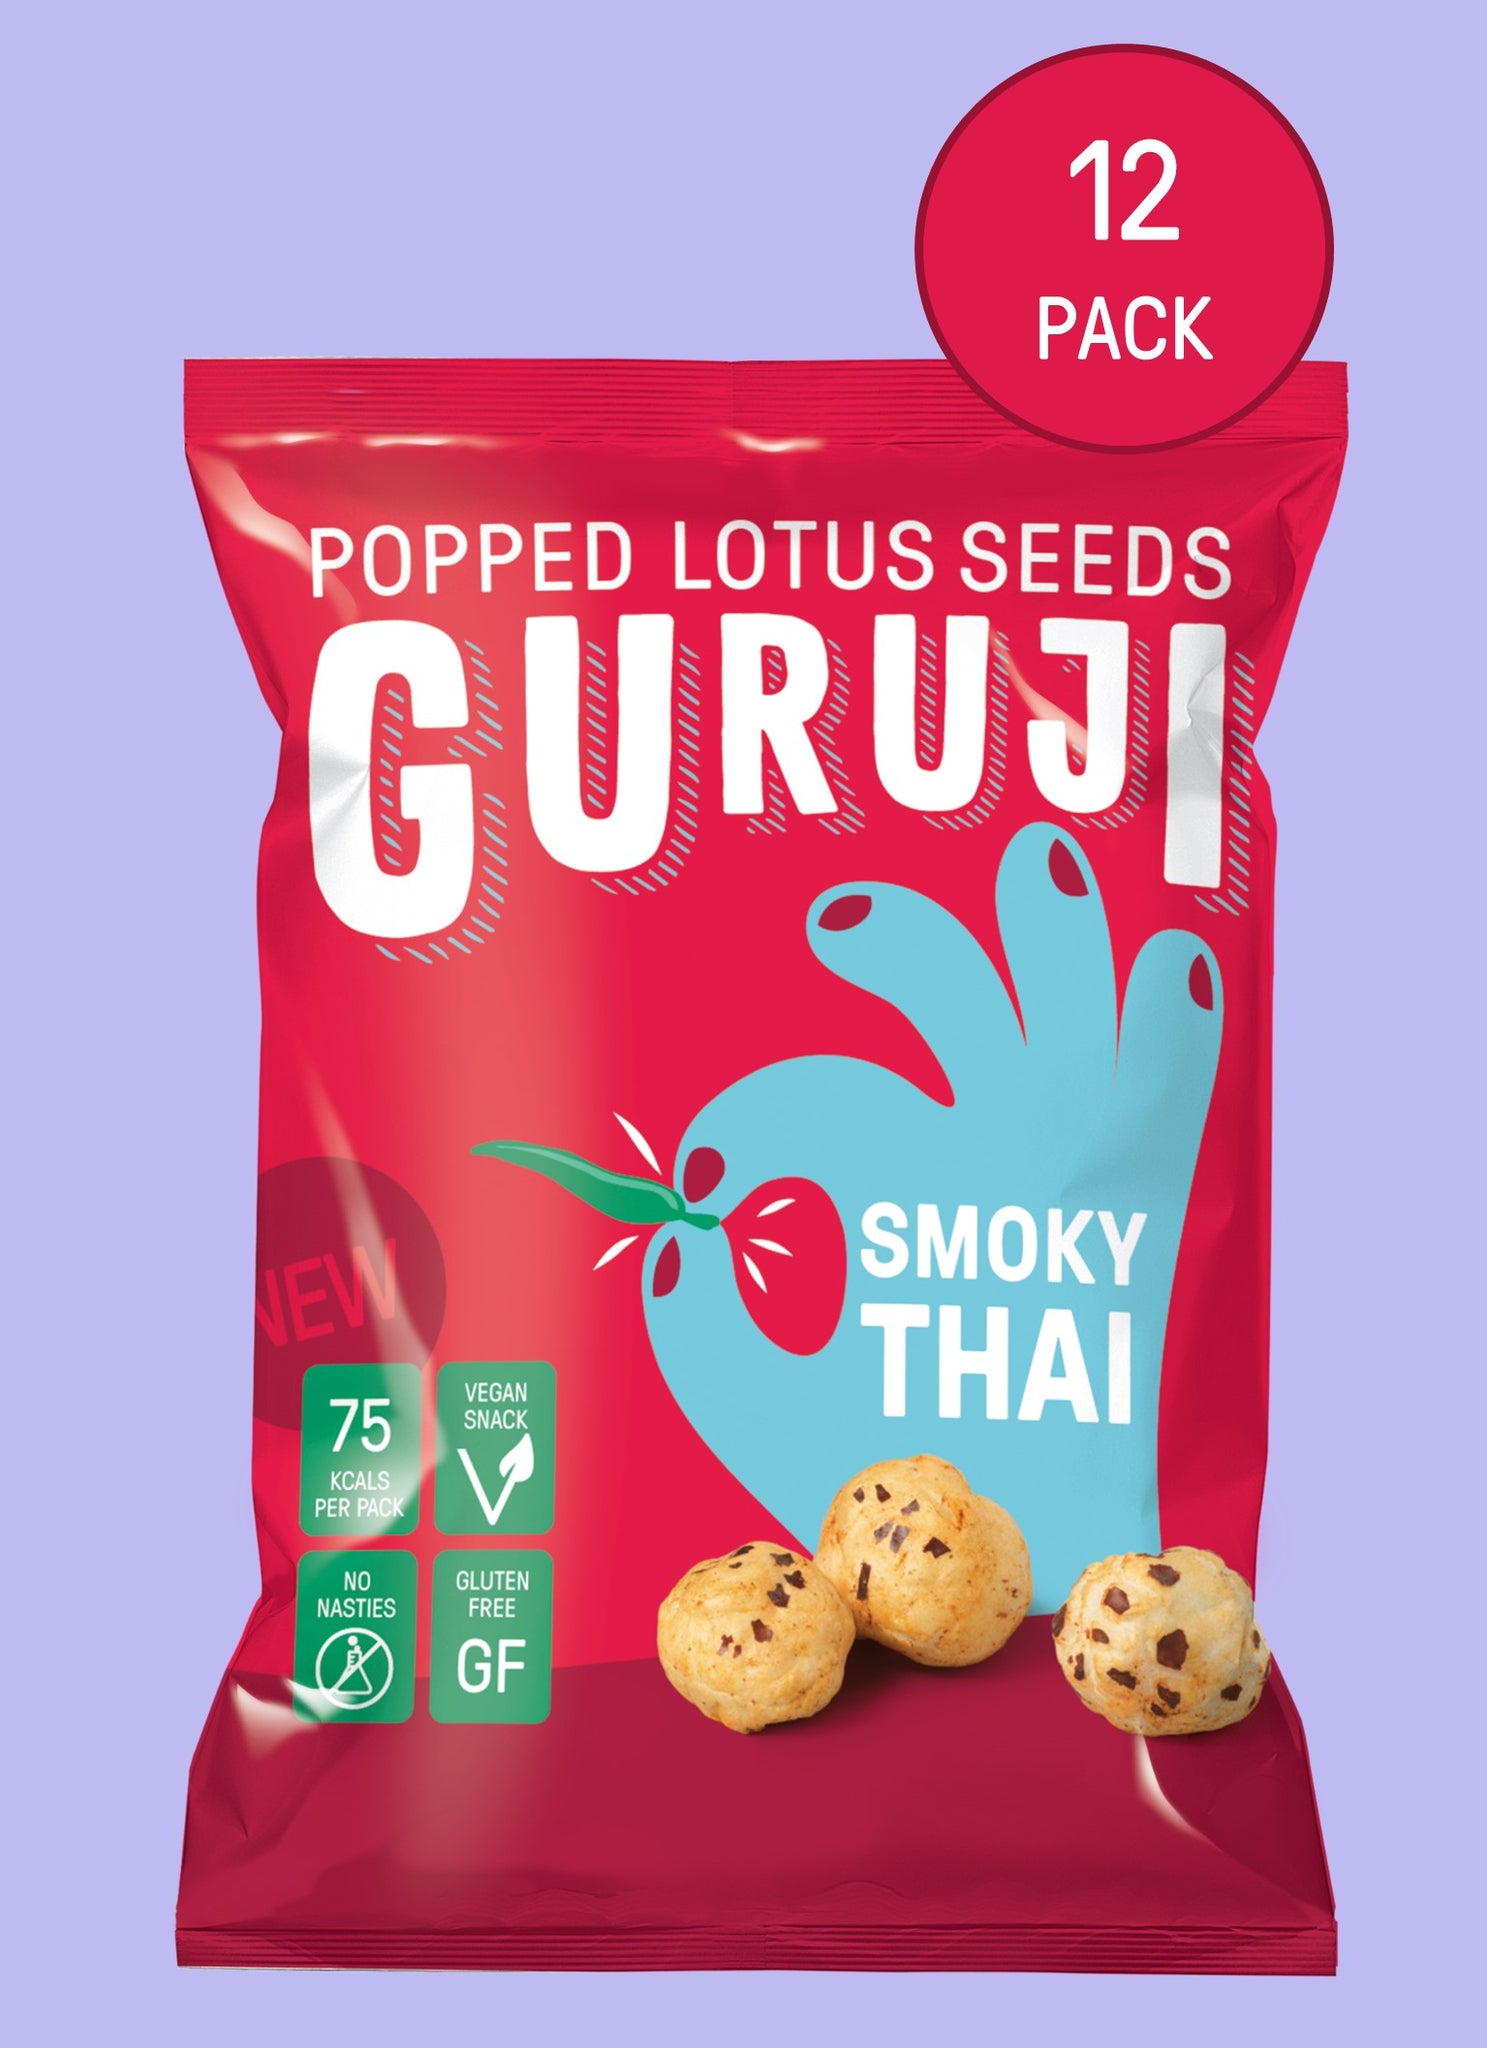 Smoky Thai 12 x 17g Packs - Pops Guruji Snacks